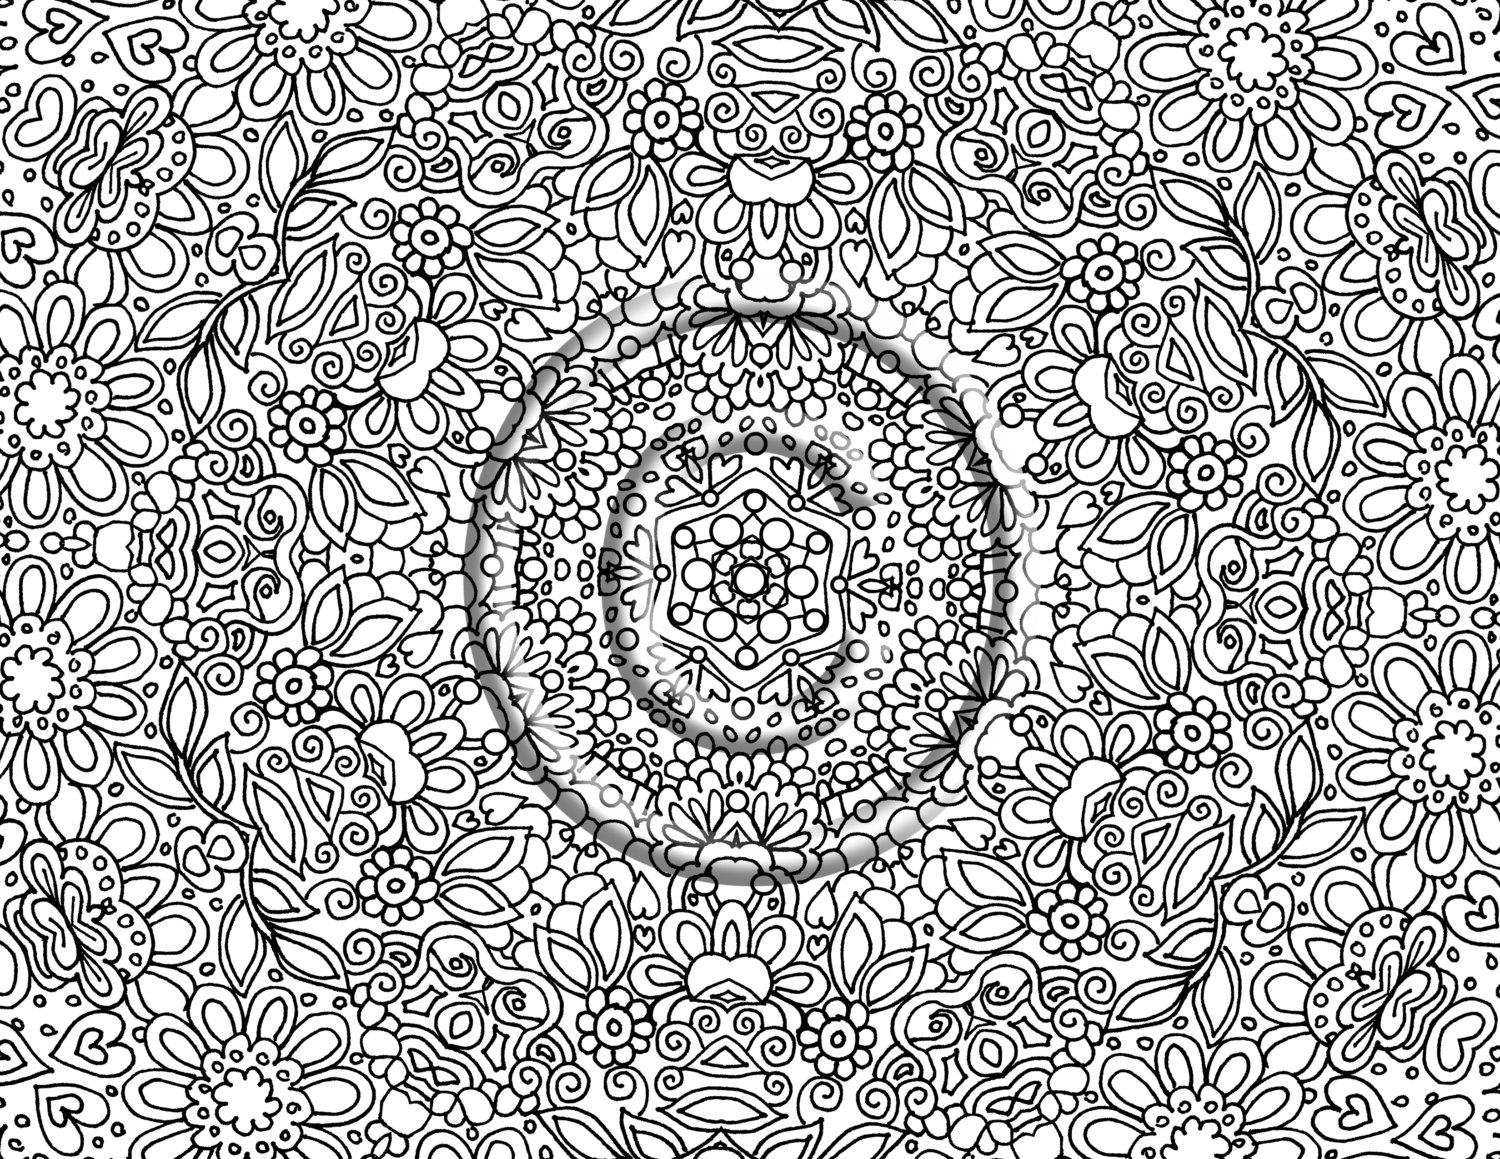 Detailed coloring pages only coloring pages